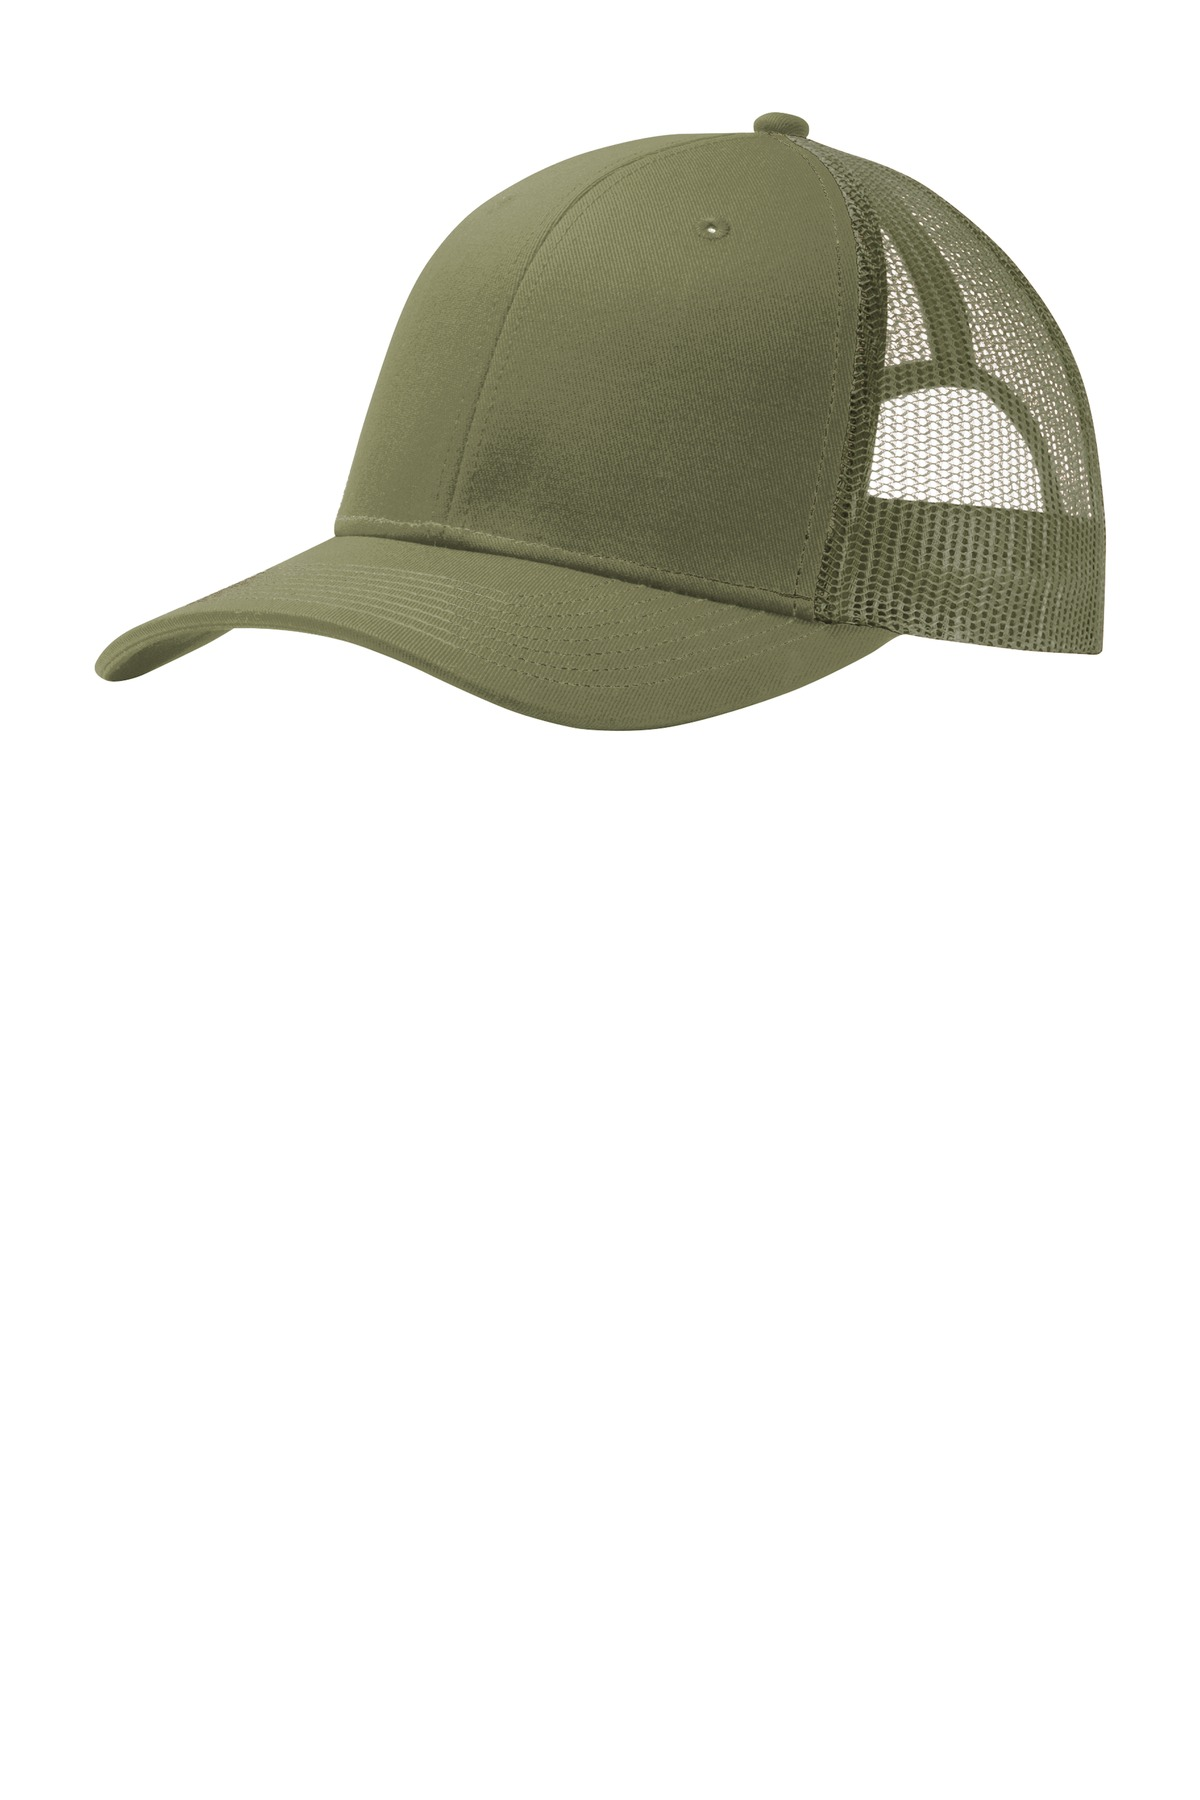 Port Authority ®  Snapback Trucker Cap. C112 - Olive Drab Green